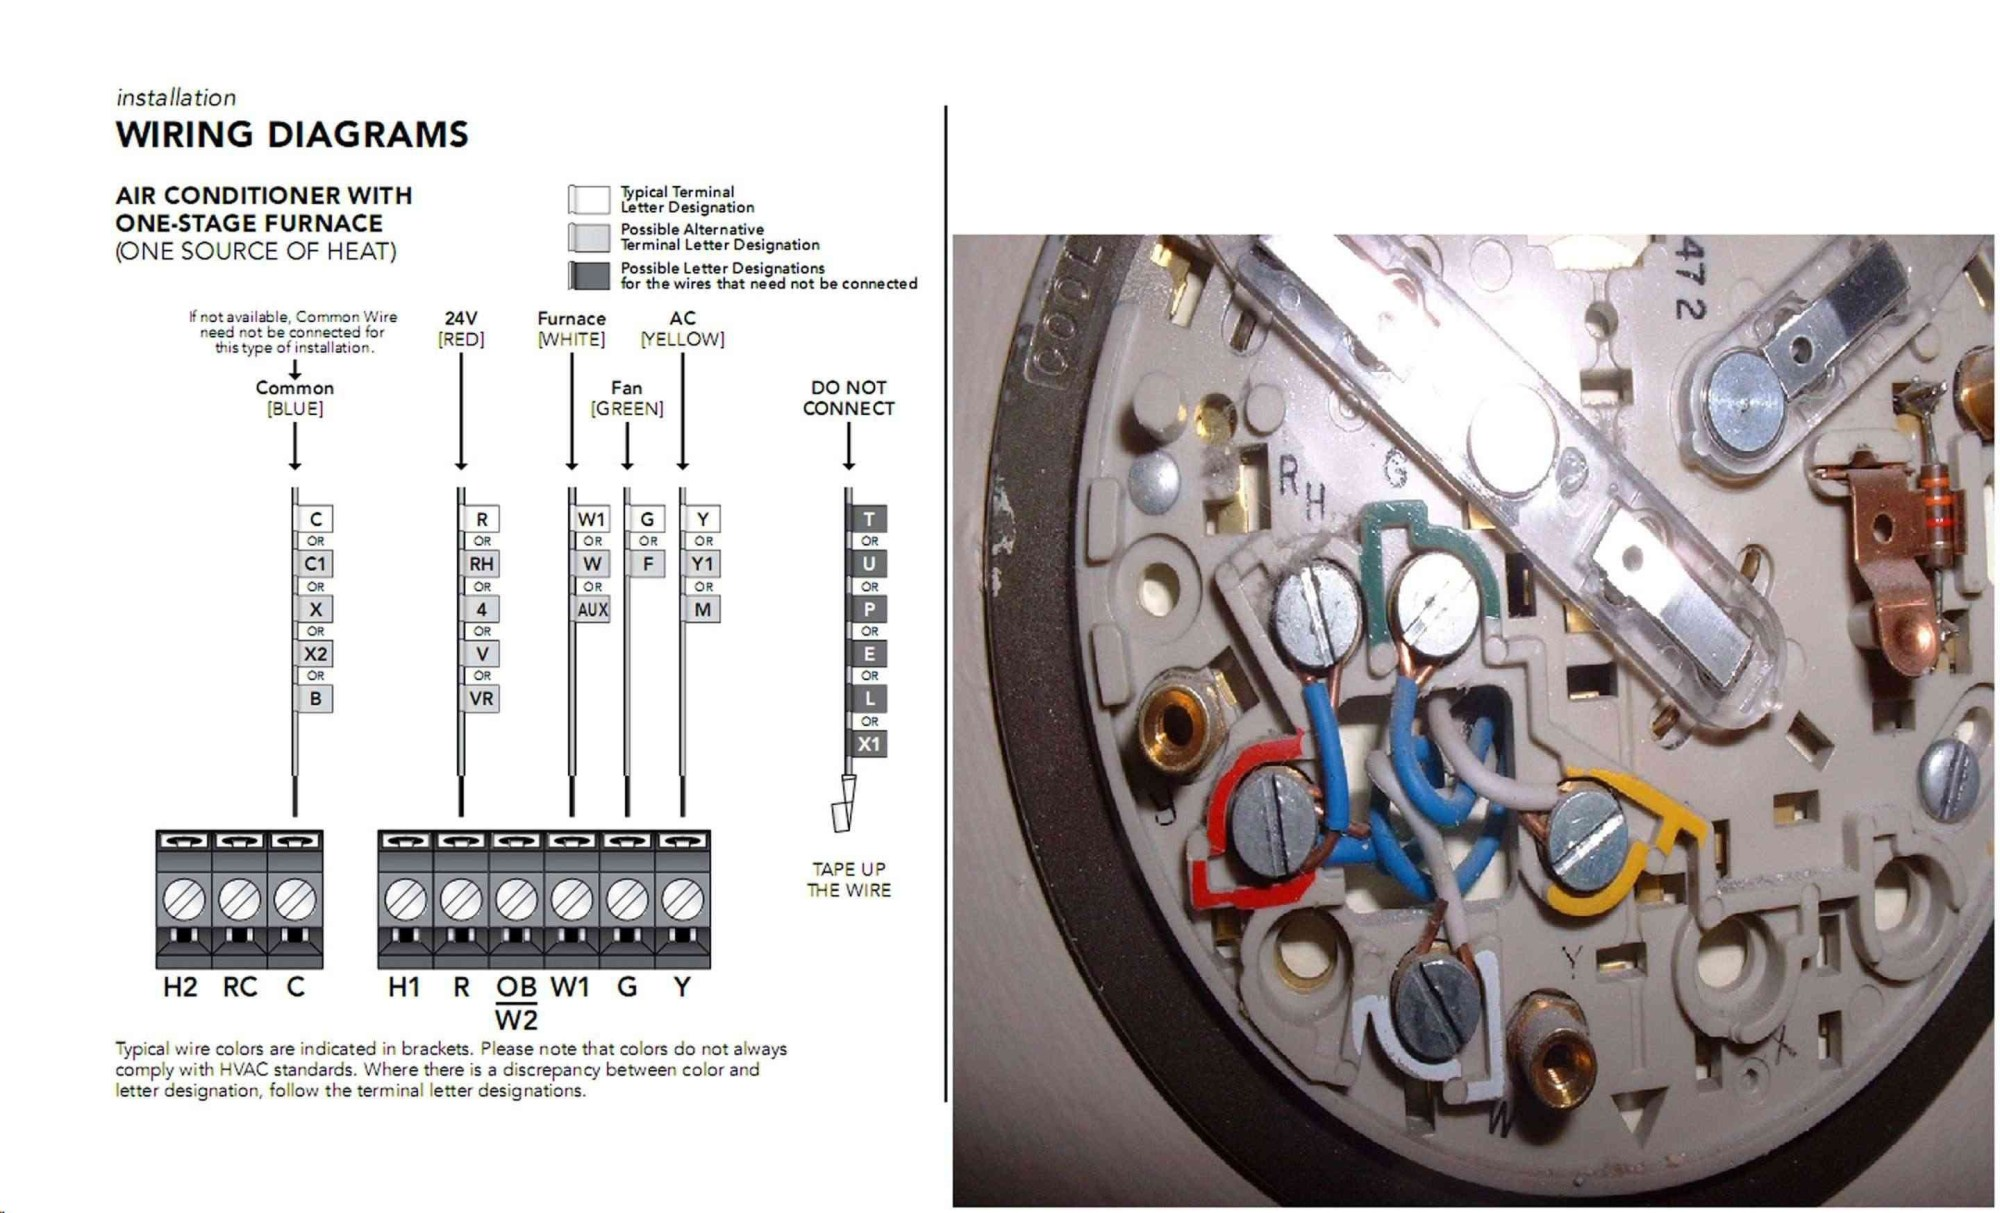 hight resolution of honeywell dial thermostat wiring diagram best site dial thermostat wiring diagram nest thermostat wiring diagram